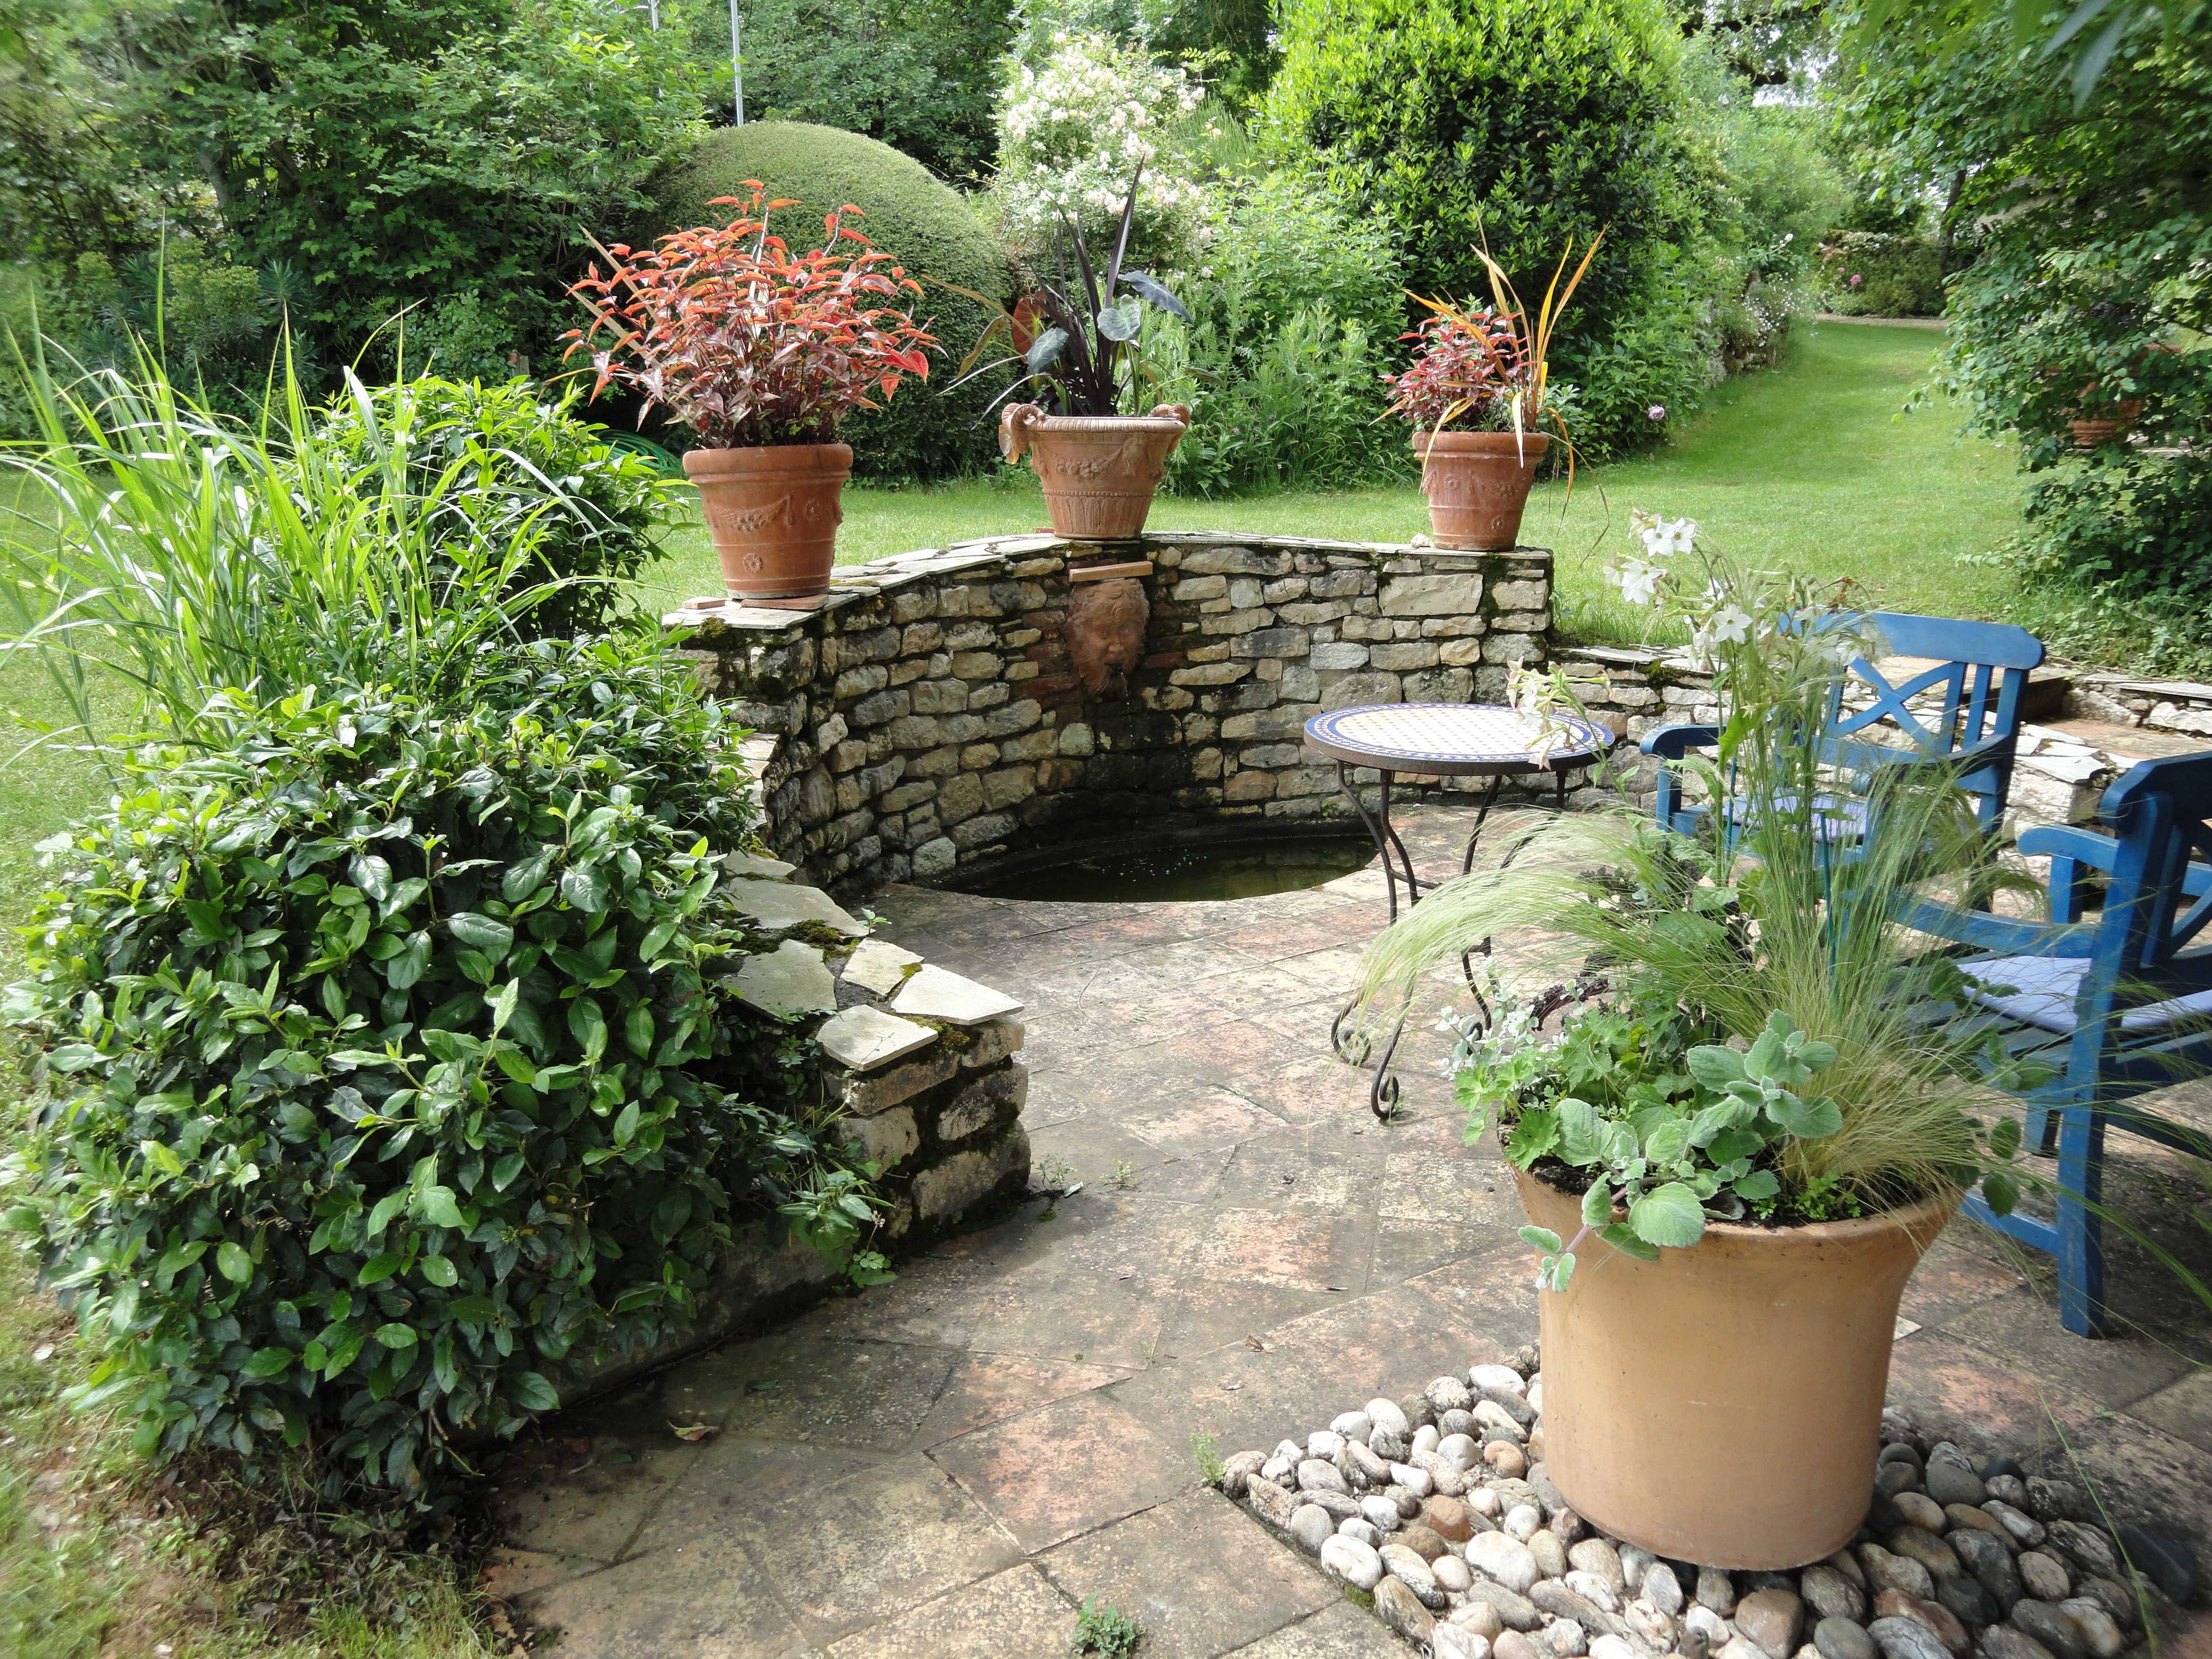 French Garden Design Ideas Of Gardens With Images Plants Estates